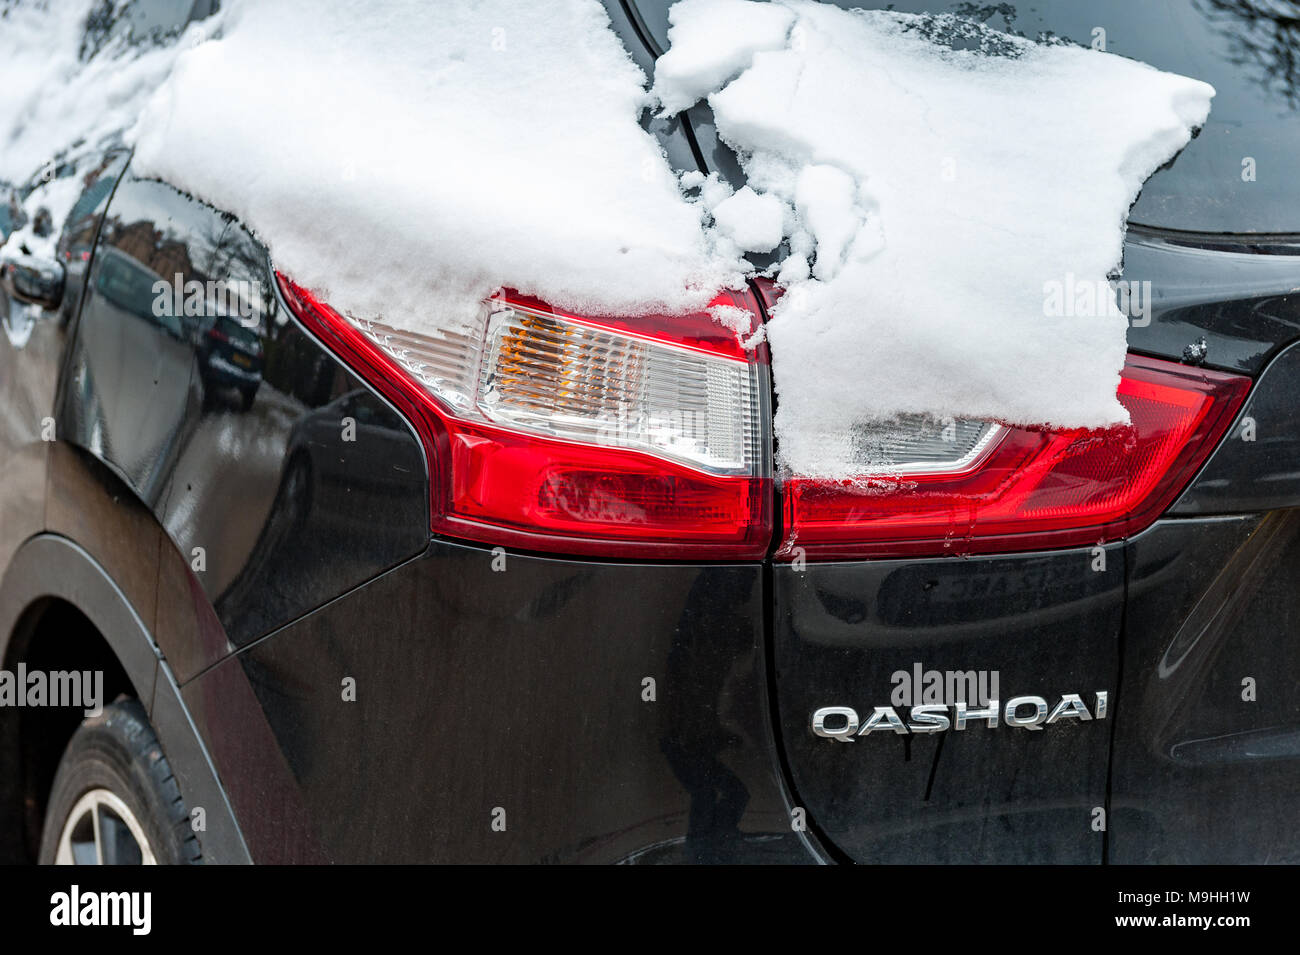 Nissan Qashqai covered in snow during Storm Emma, parked in Coventry, West Midlands, UK. - Stock Image